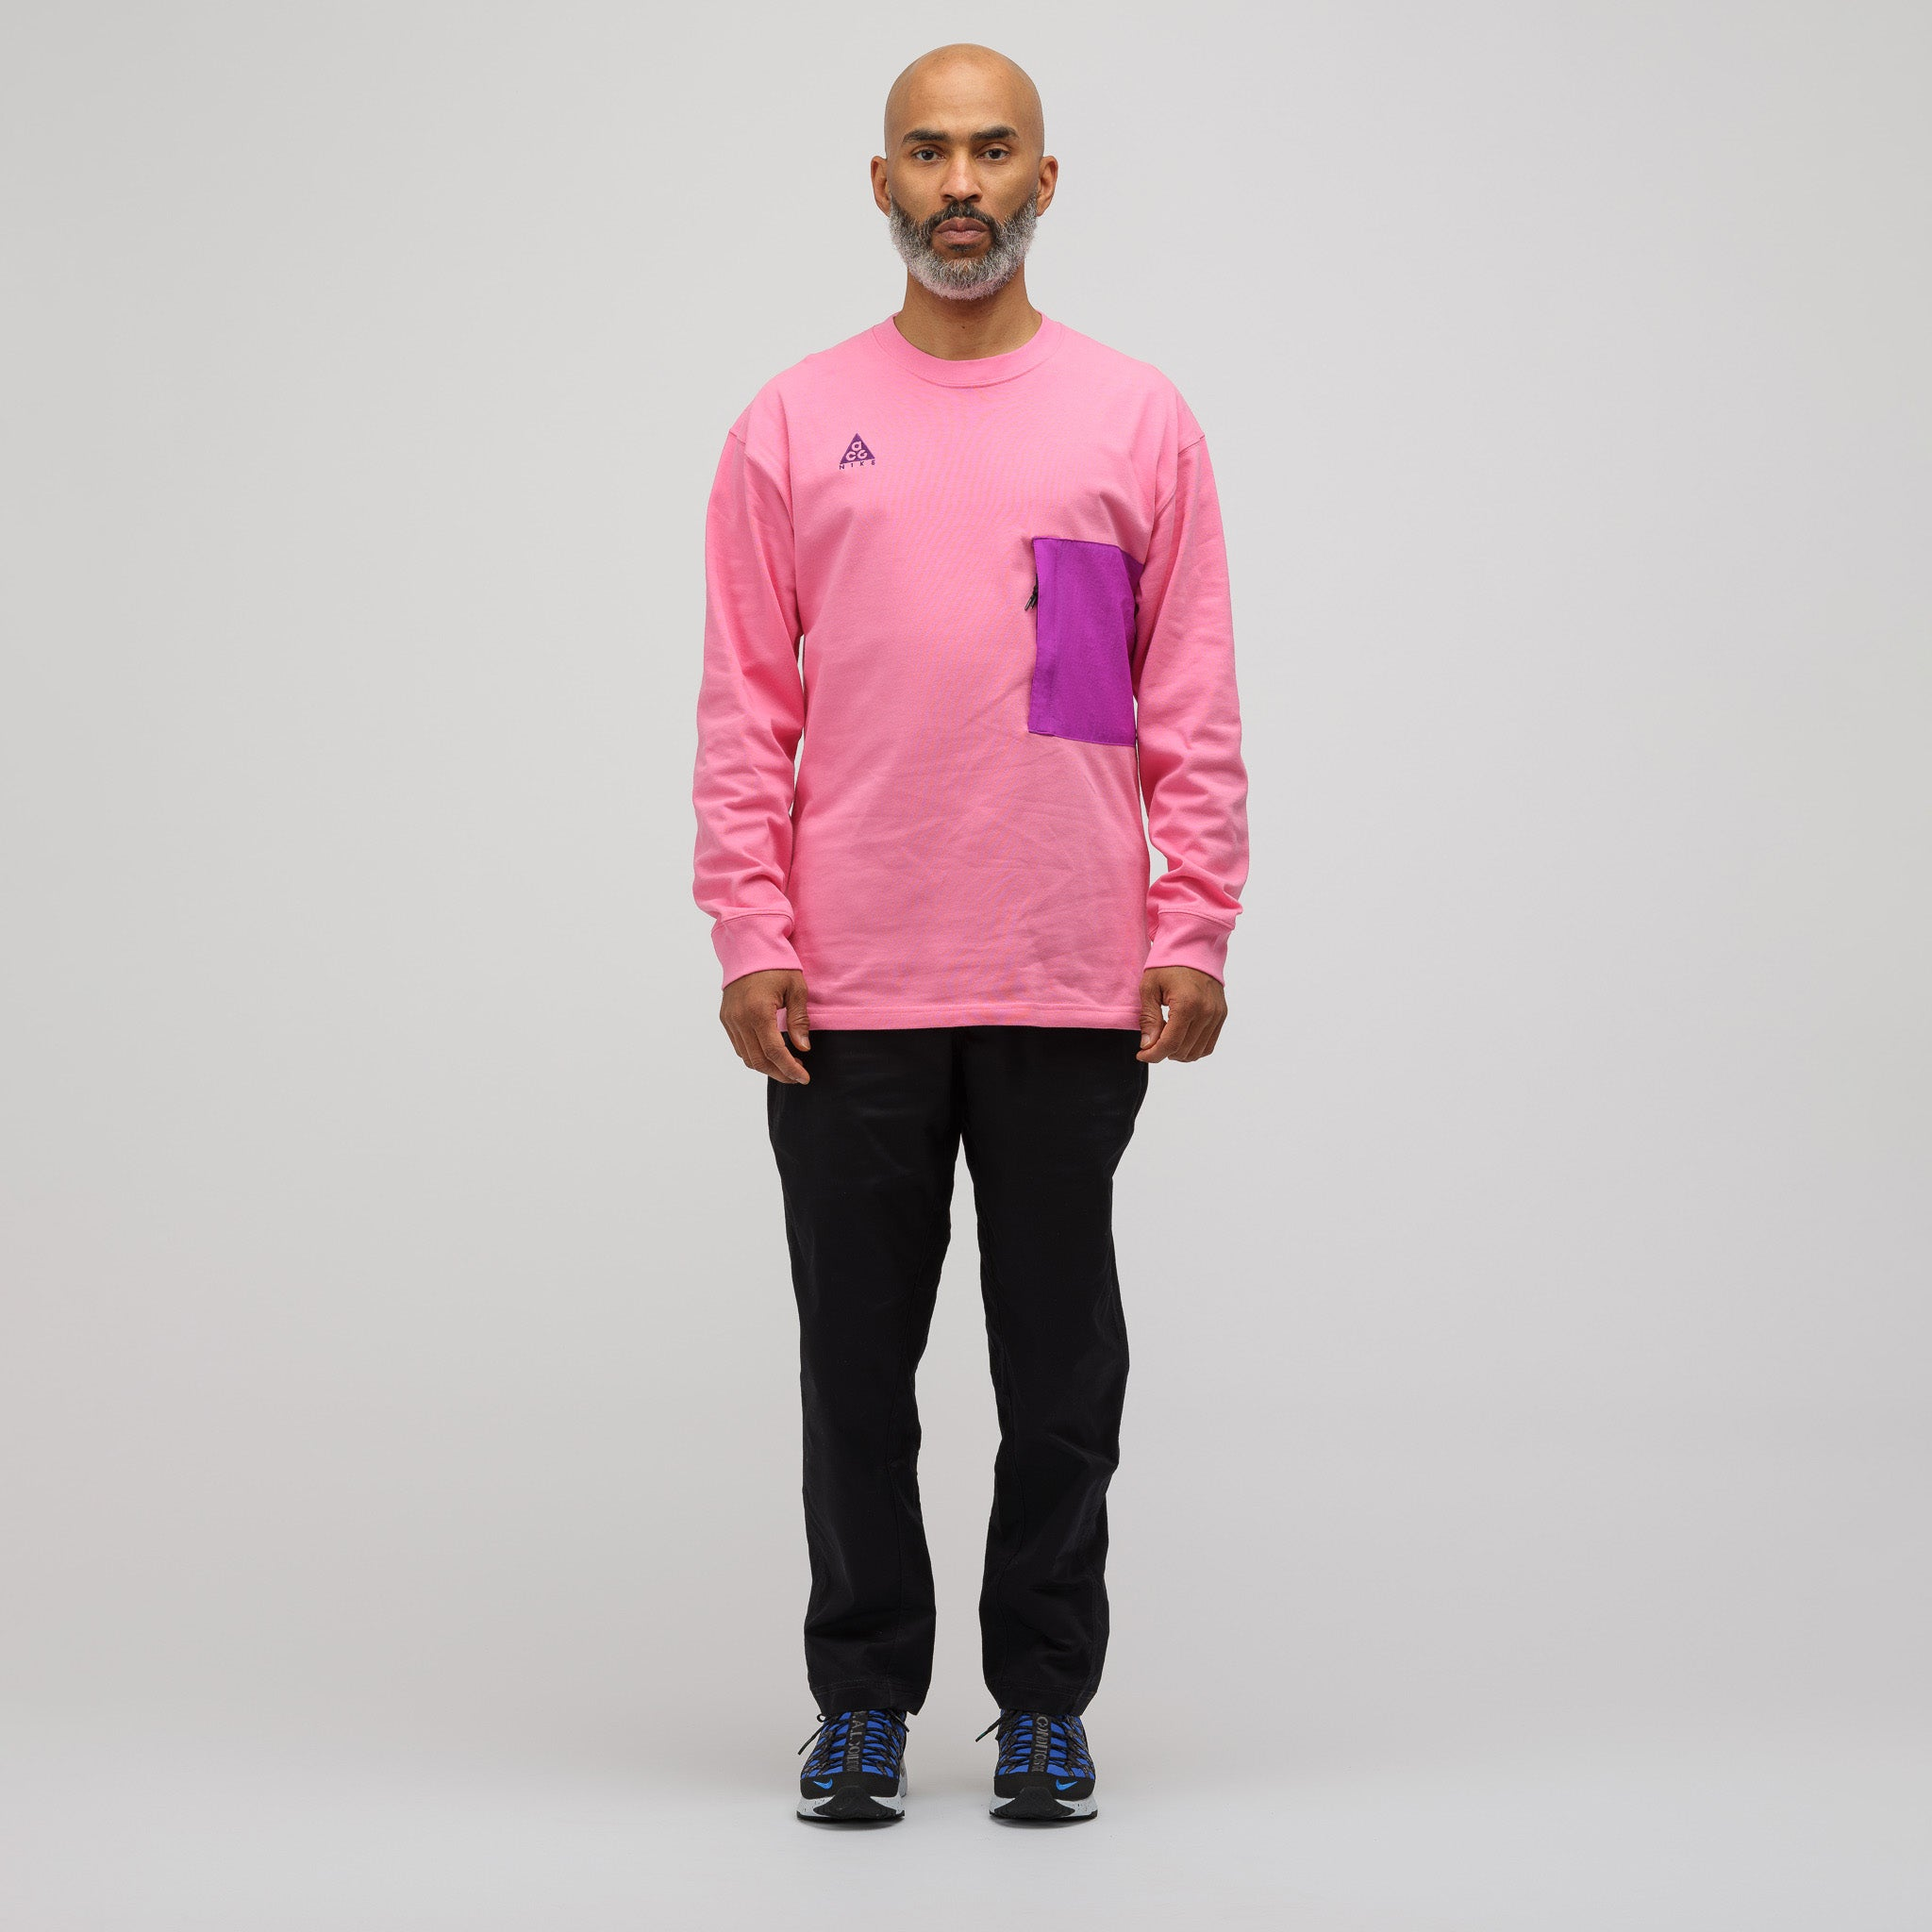 8a9252b4 Nike ACG Long Sleeve T-Shirt in Pink | Notre